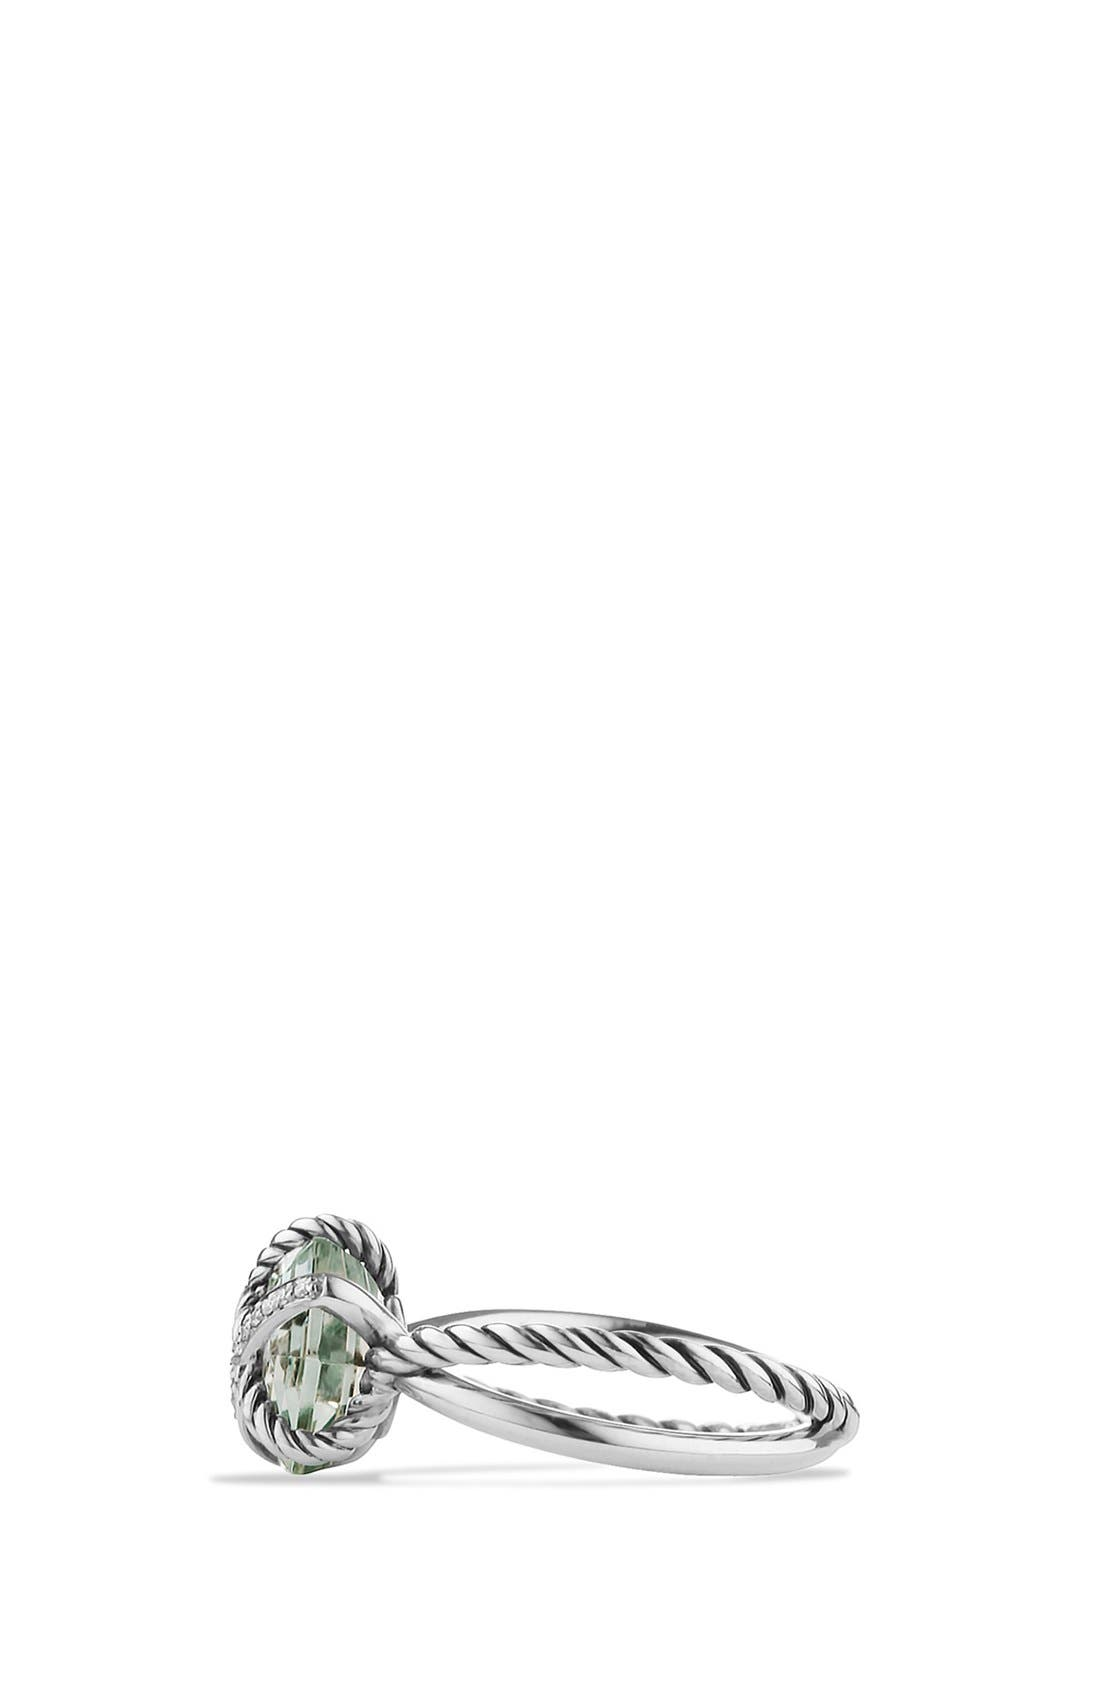 Cable Wrap Ring with Semiprecious Stone and Diamonds,                             Alternate thumbnail 3, color,                             Prasiolite